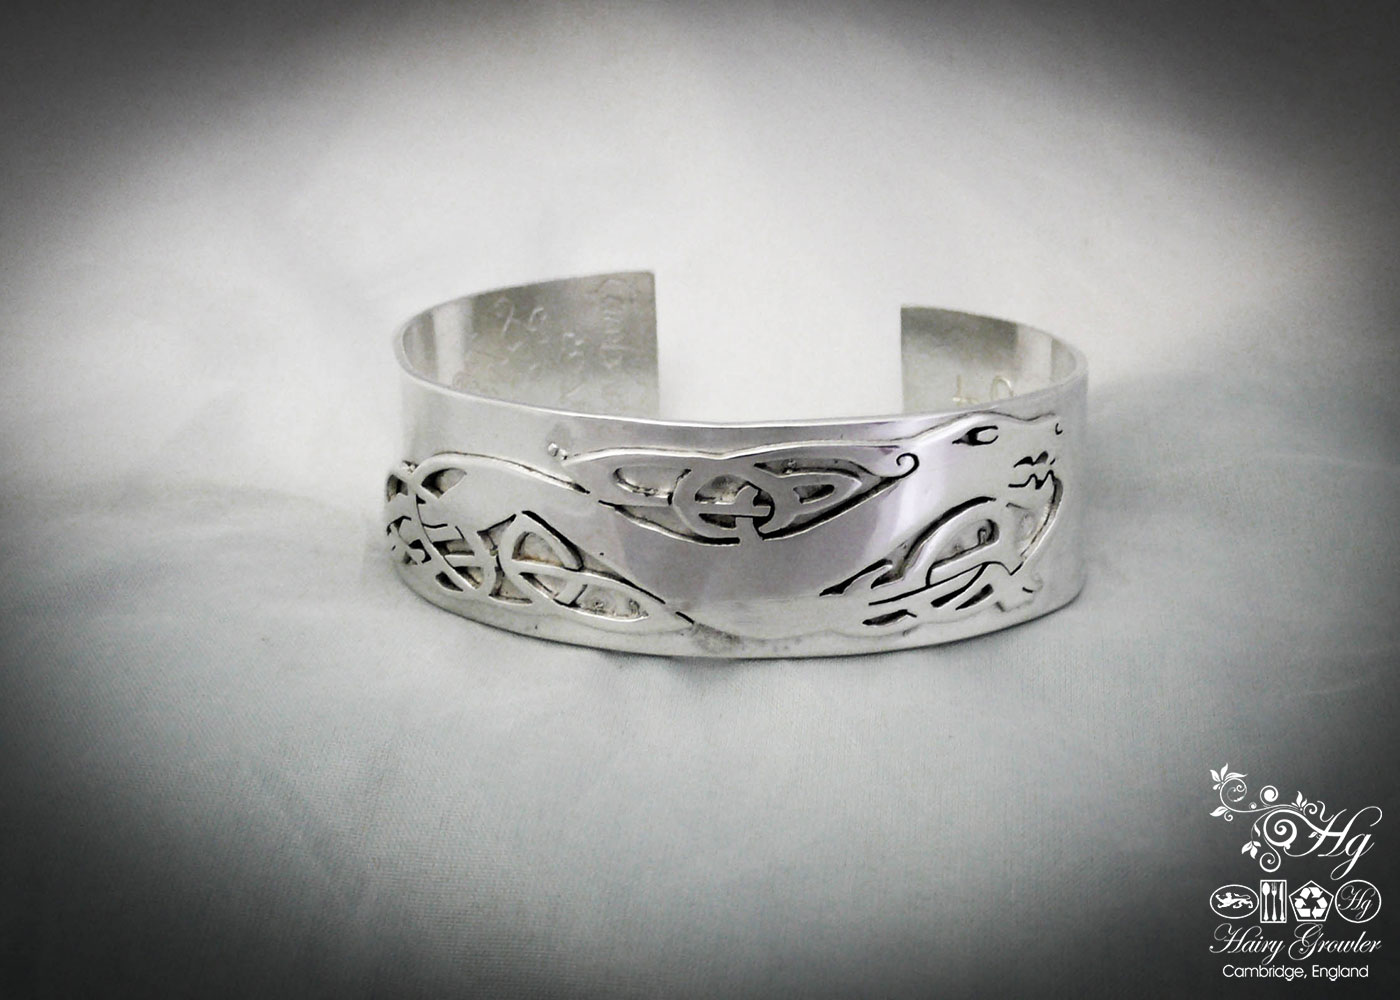 Handcrafted and recycled silver celtic kuff bangle